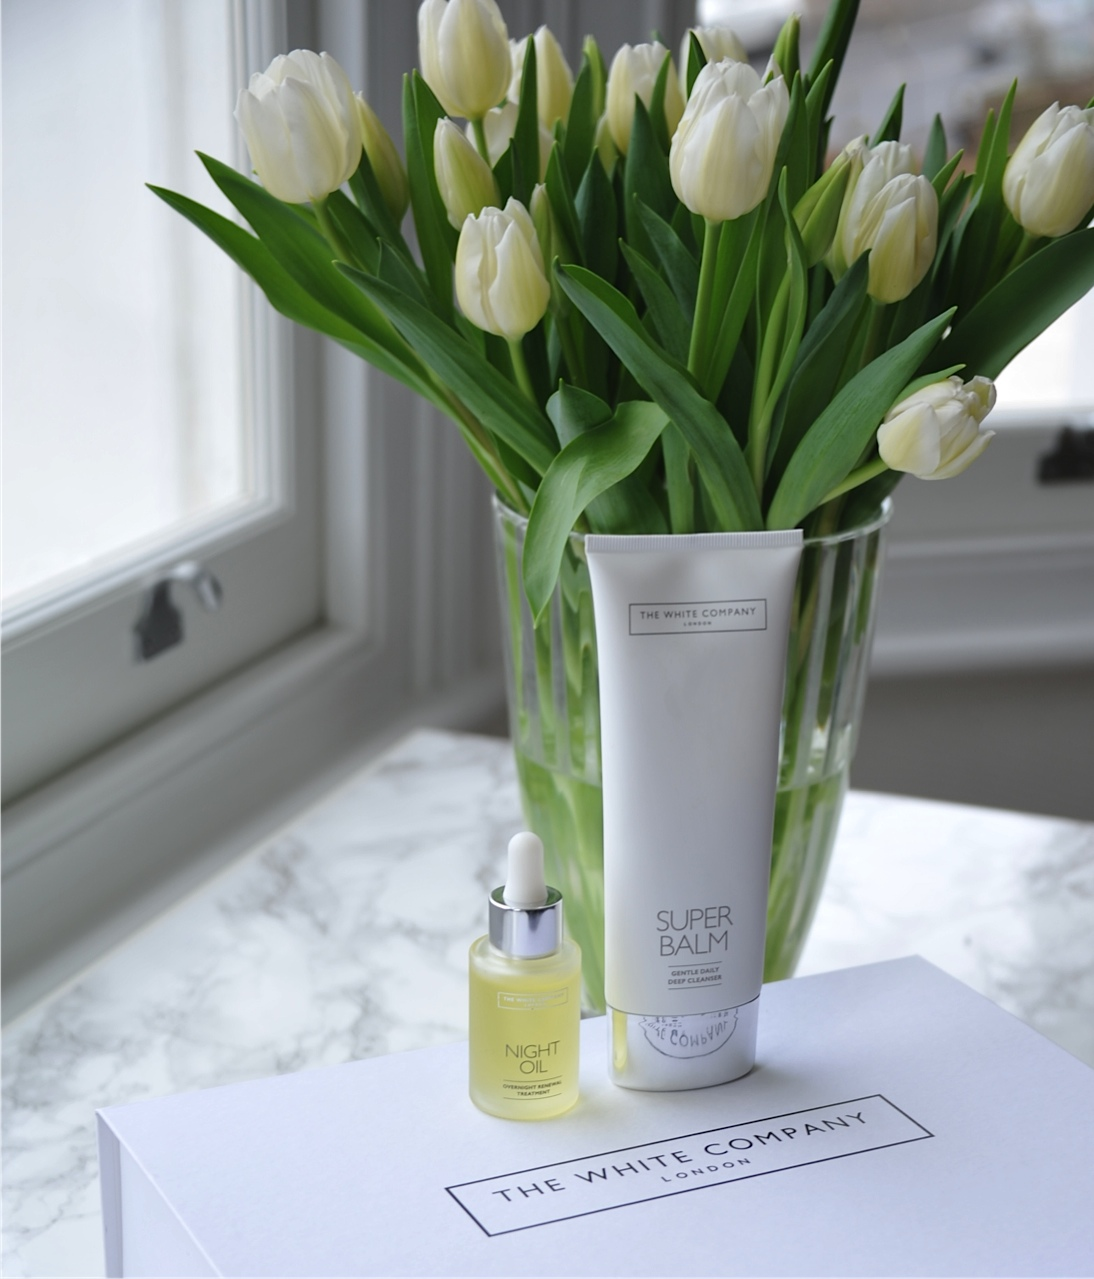 The White Company skincare products